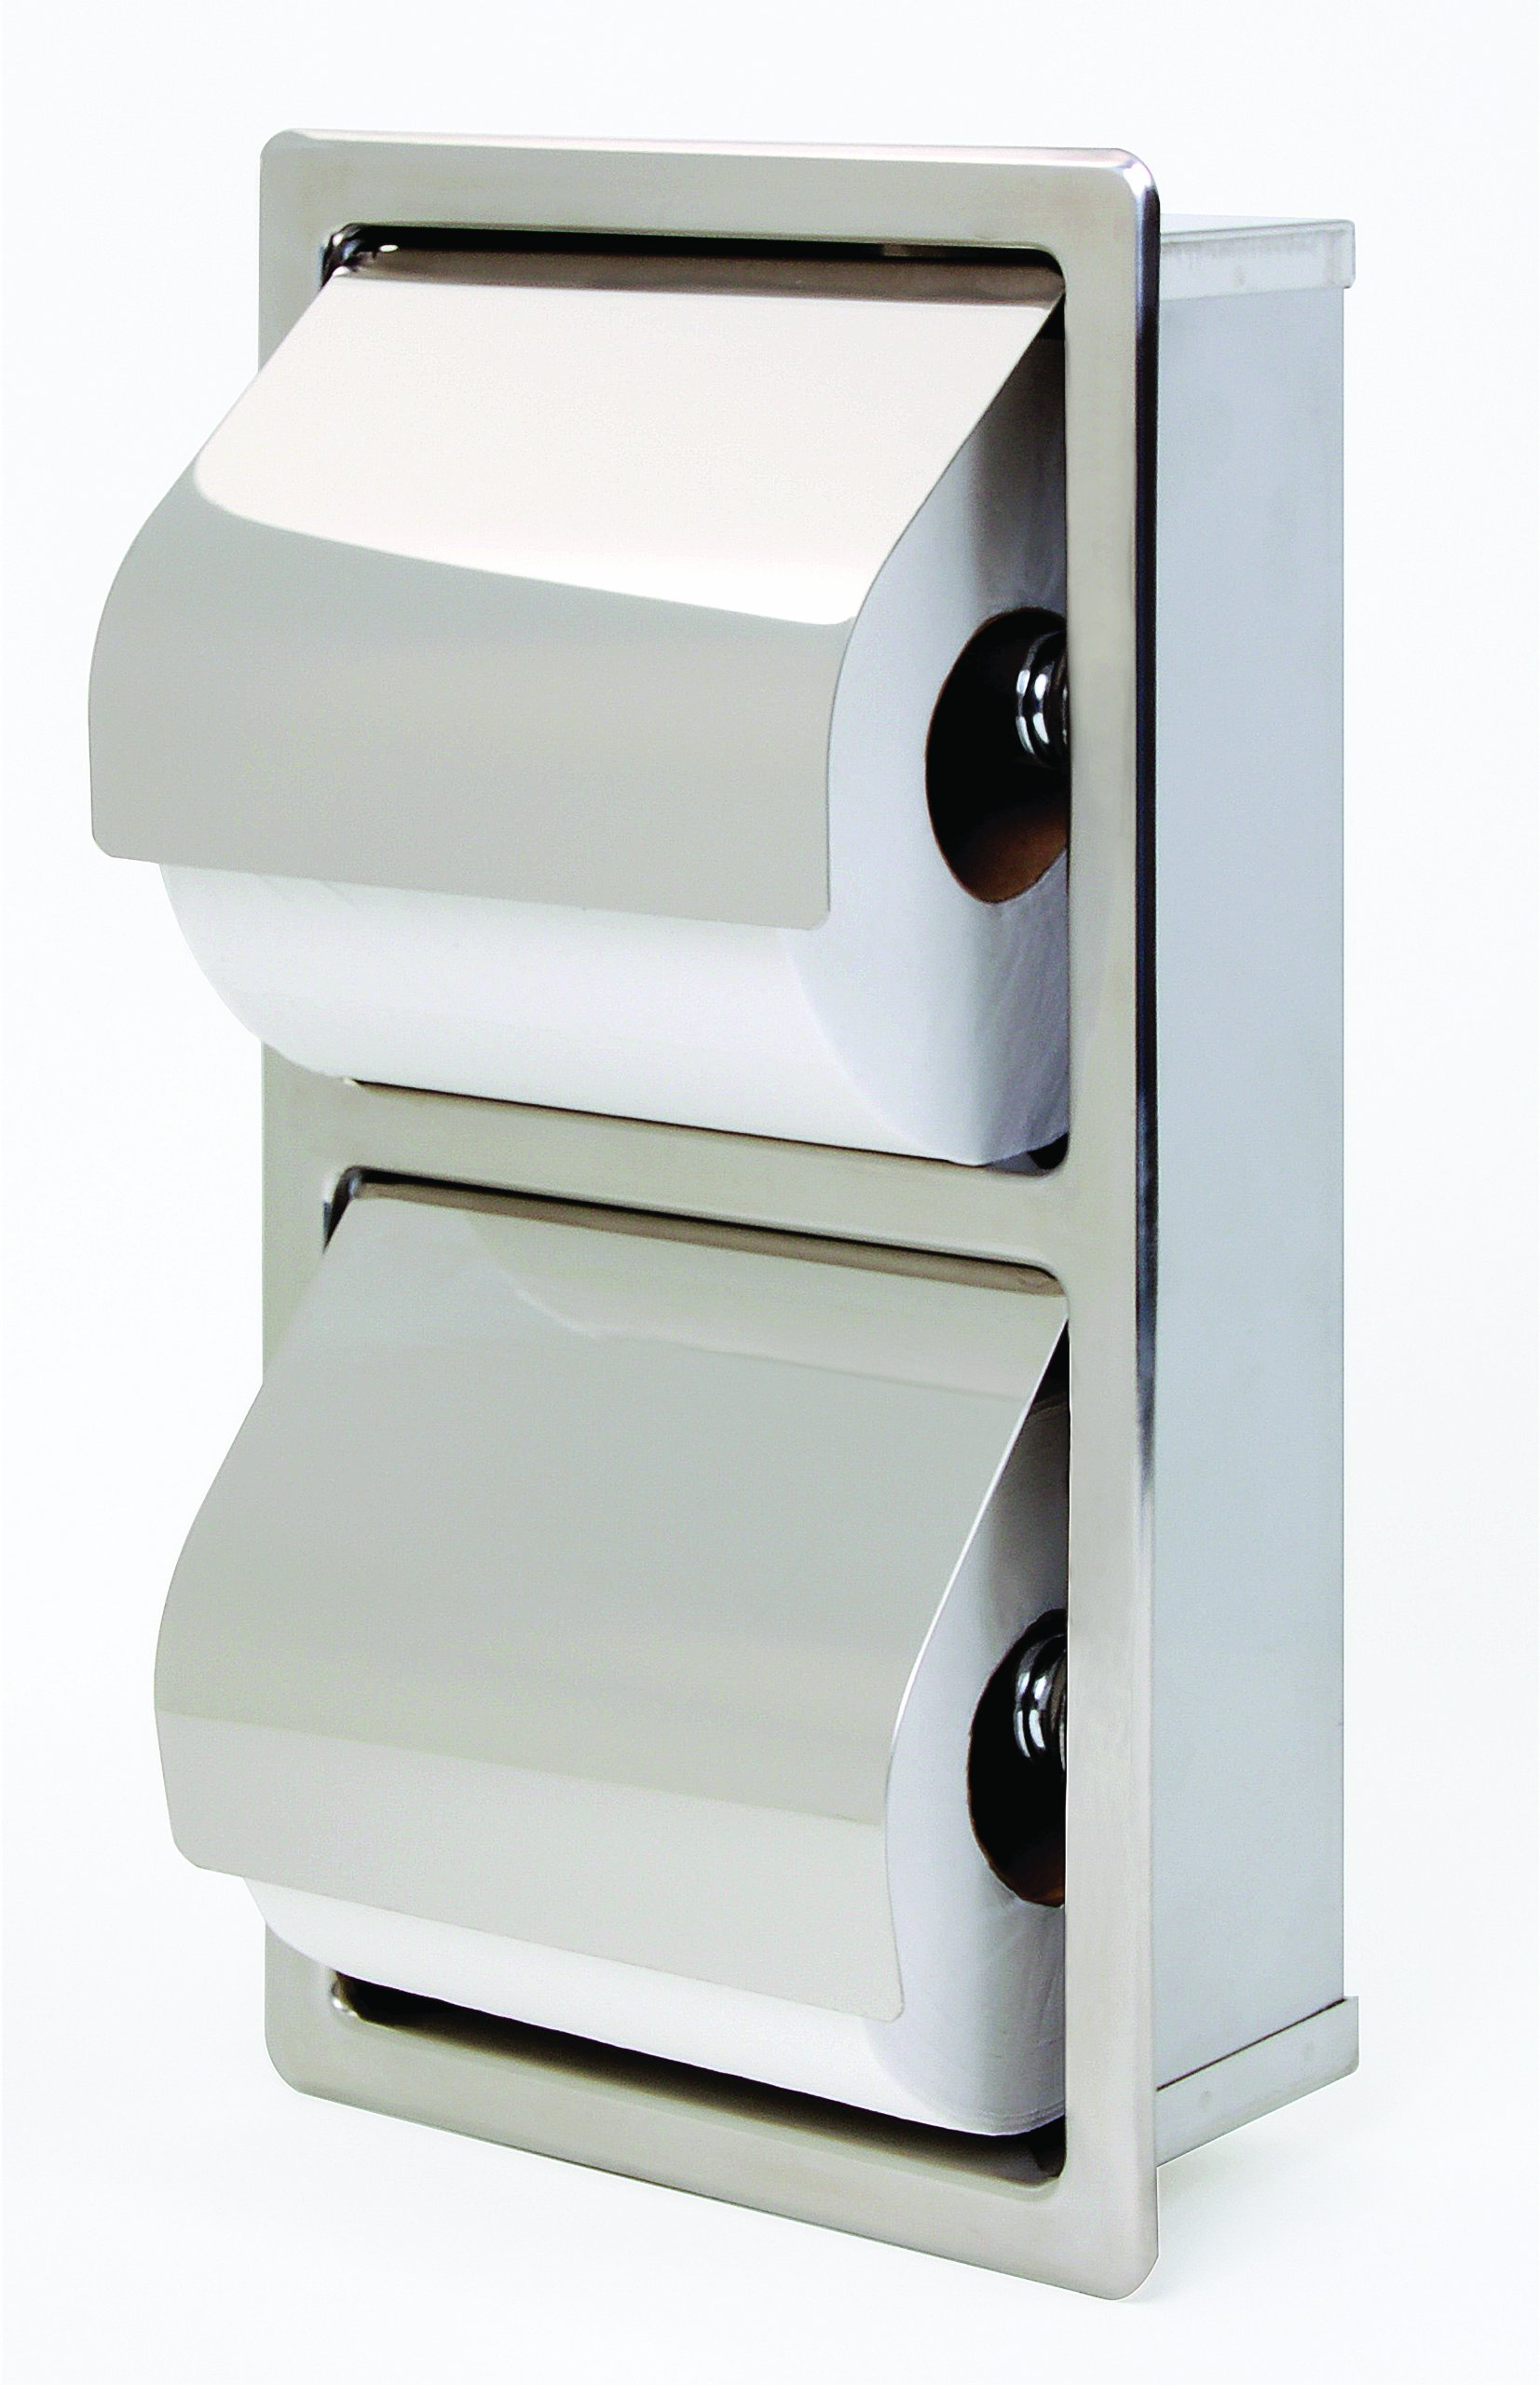 Bradley 5127-000000 Stainless Steel Recessed Mounted Hinged Hood Stacking Rolls Toilet Tissue Dispenser, 6-1/2'' Width x 12-1/4'' Height x 3'' Depth by Bradley (Image #1)